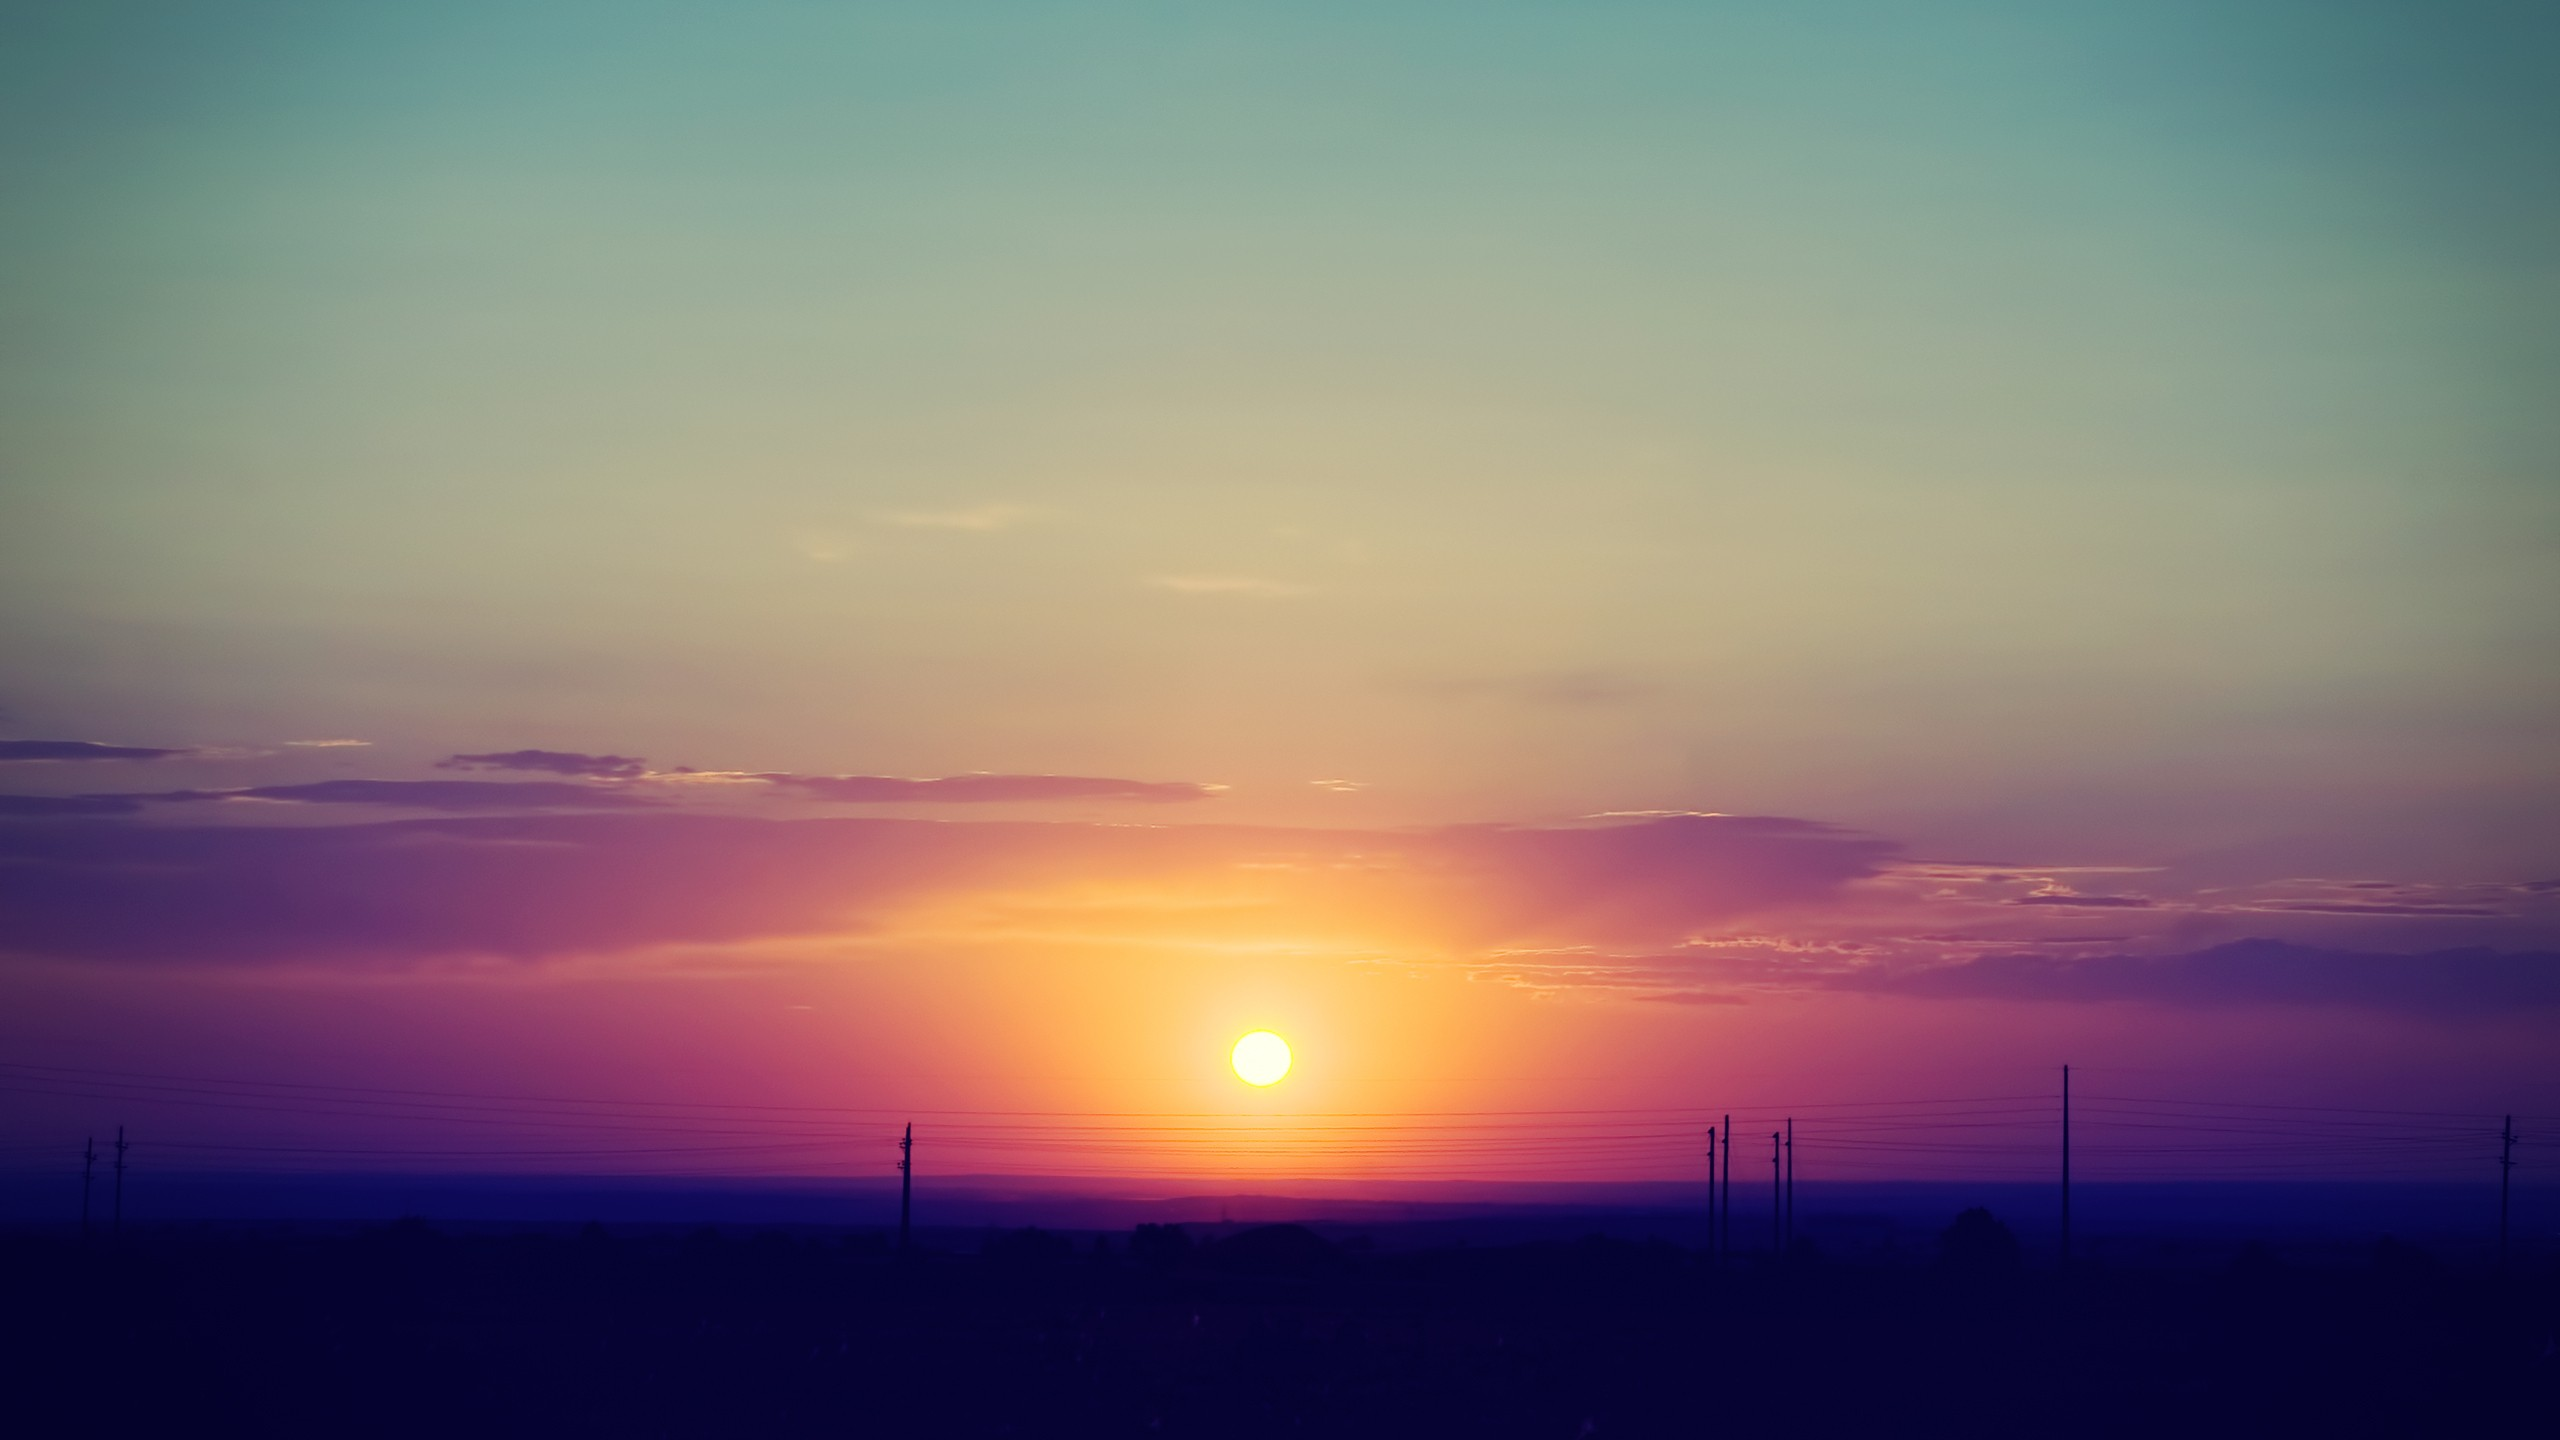 2560x1440 Summer Sunset desktop PC and Mac wallpaper 2560x1440